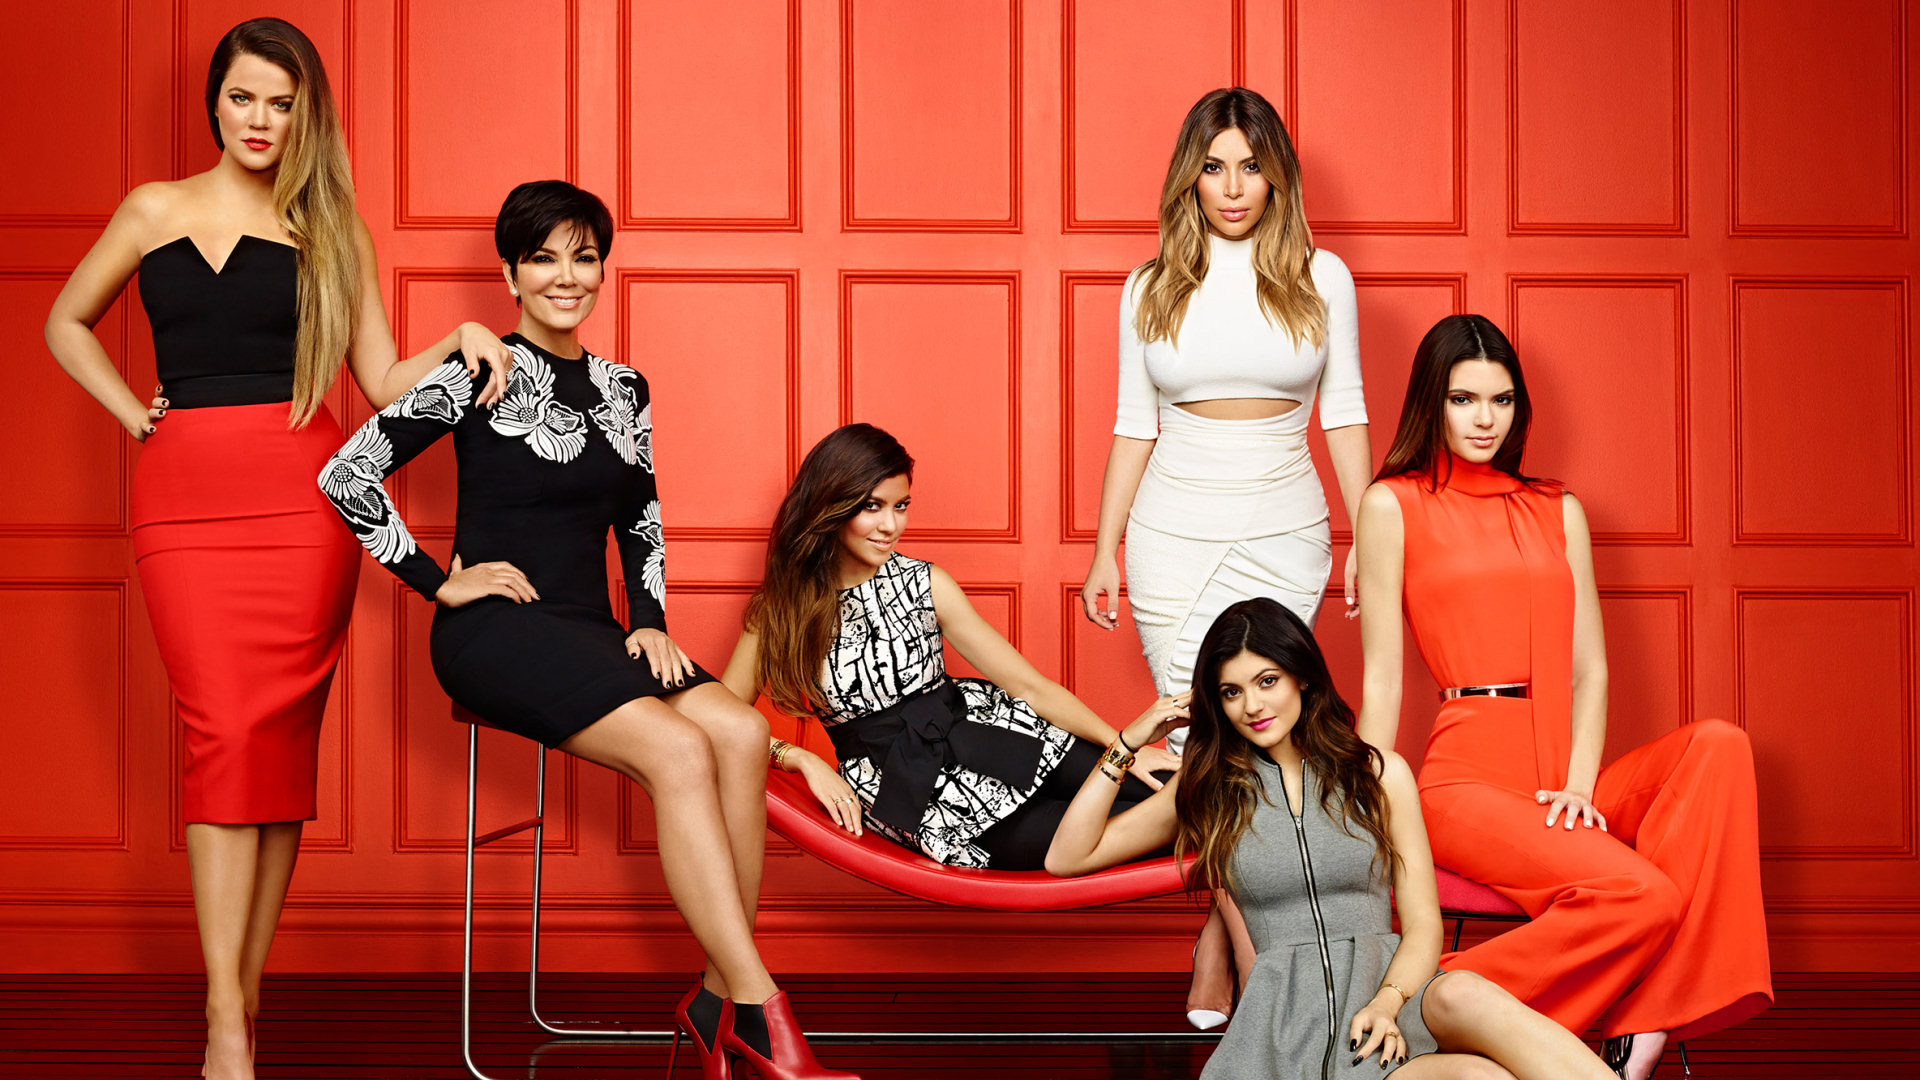 Nieuwe spinoff van Keeping Up With The Kardashians in de maak